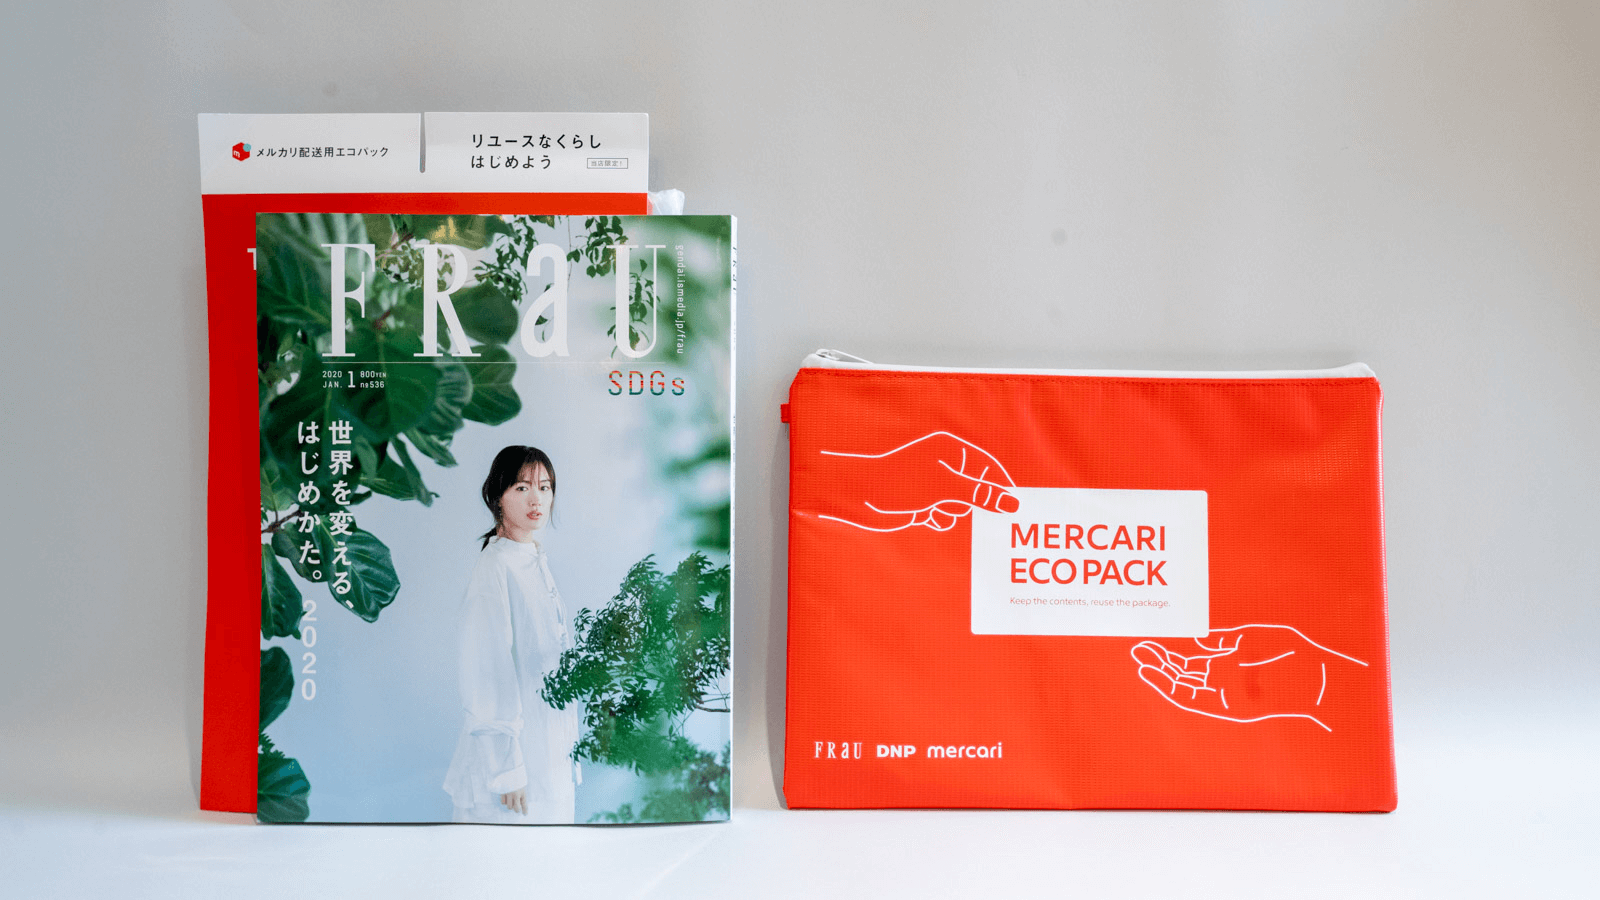 Mercari Eco Pack collaboration with Japanese fashion magazine FraU in their special SDGs edition sold in bookstores nationwide